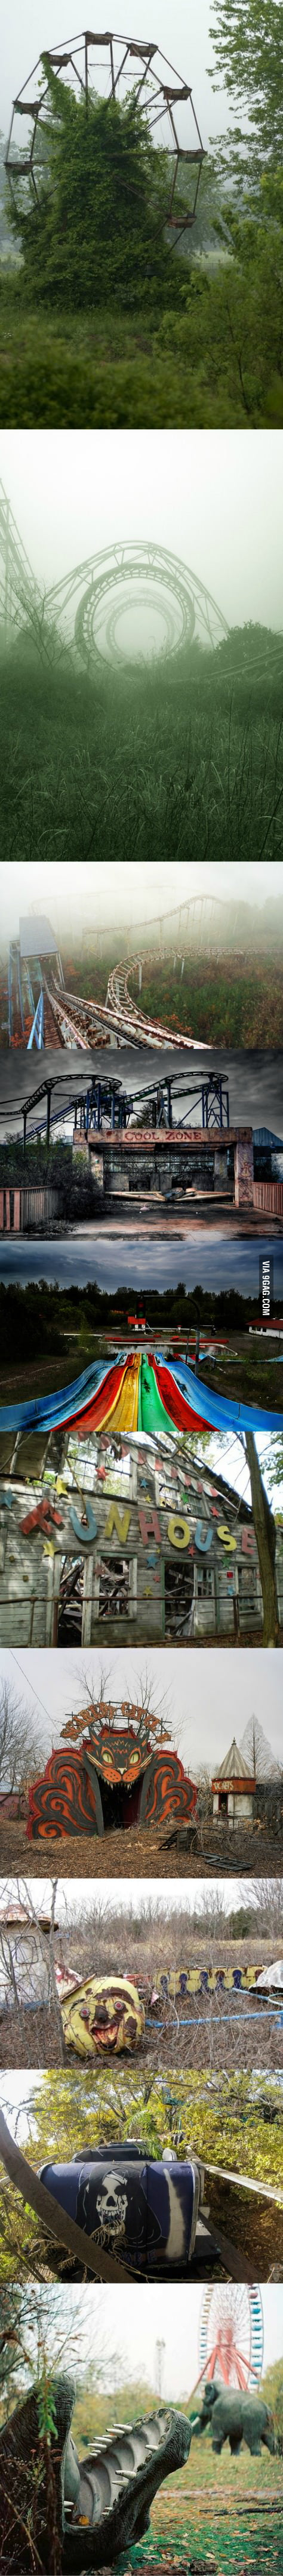 Beautiful and creepy abandoned amusement parks.